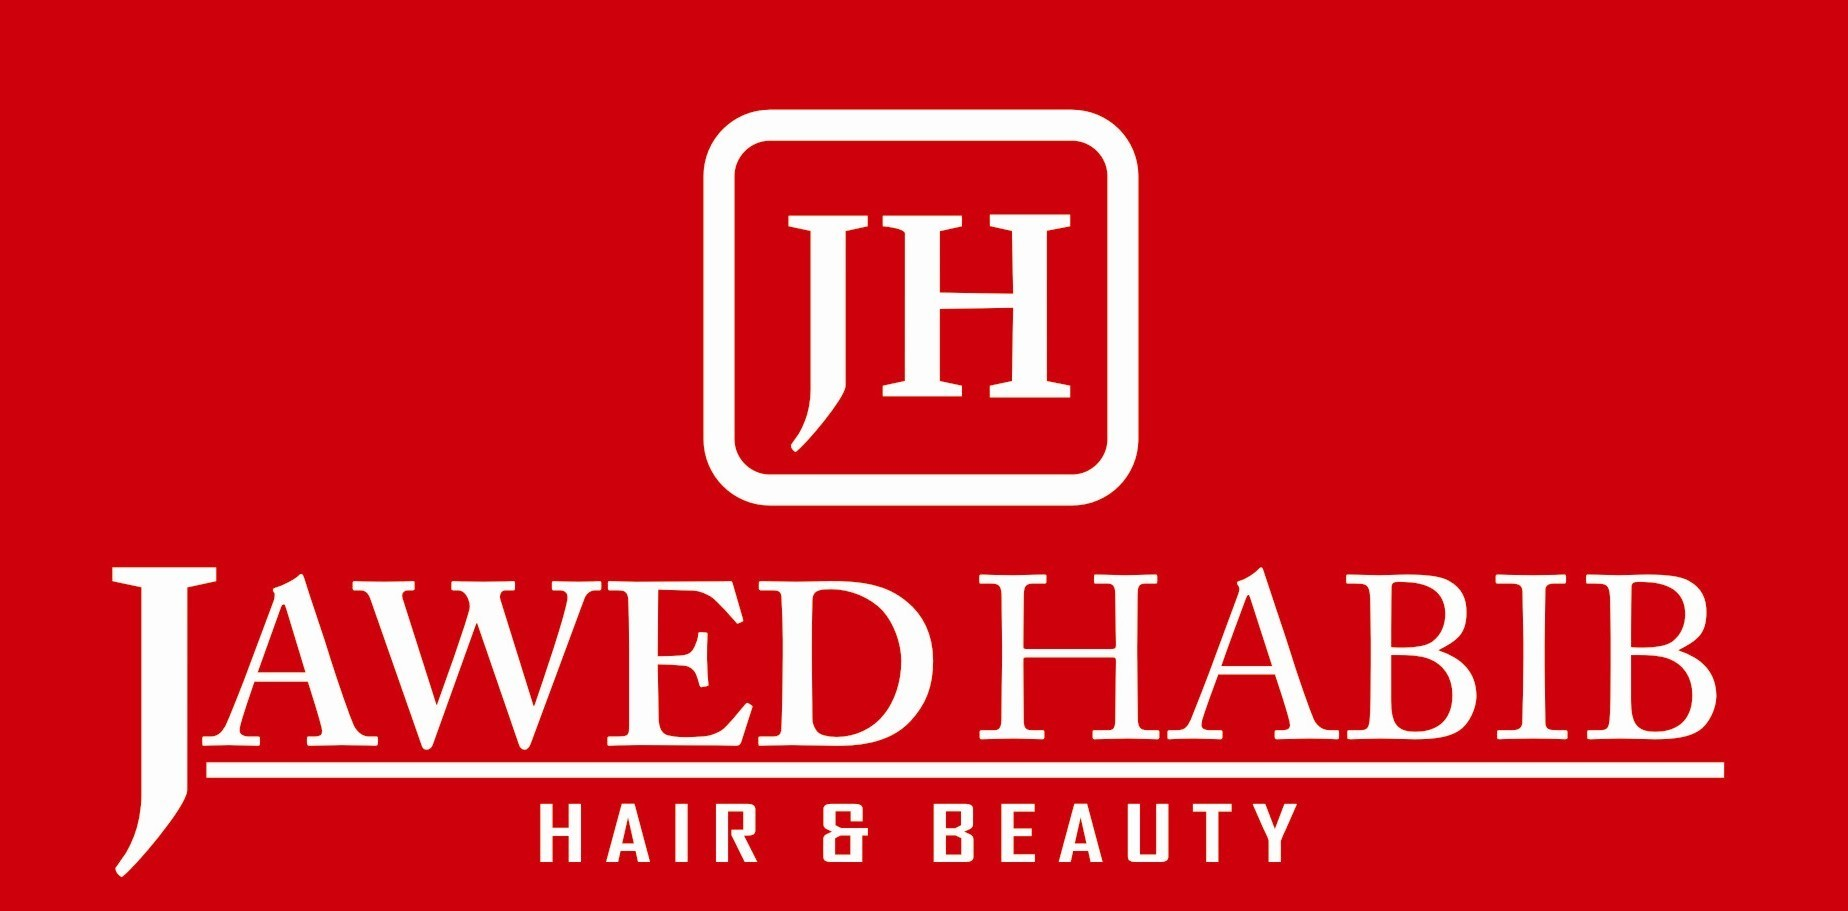 Jawed Habib Hair & Beauty Salons - J.P.Nagar 3rd Phase - Bangalore Image